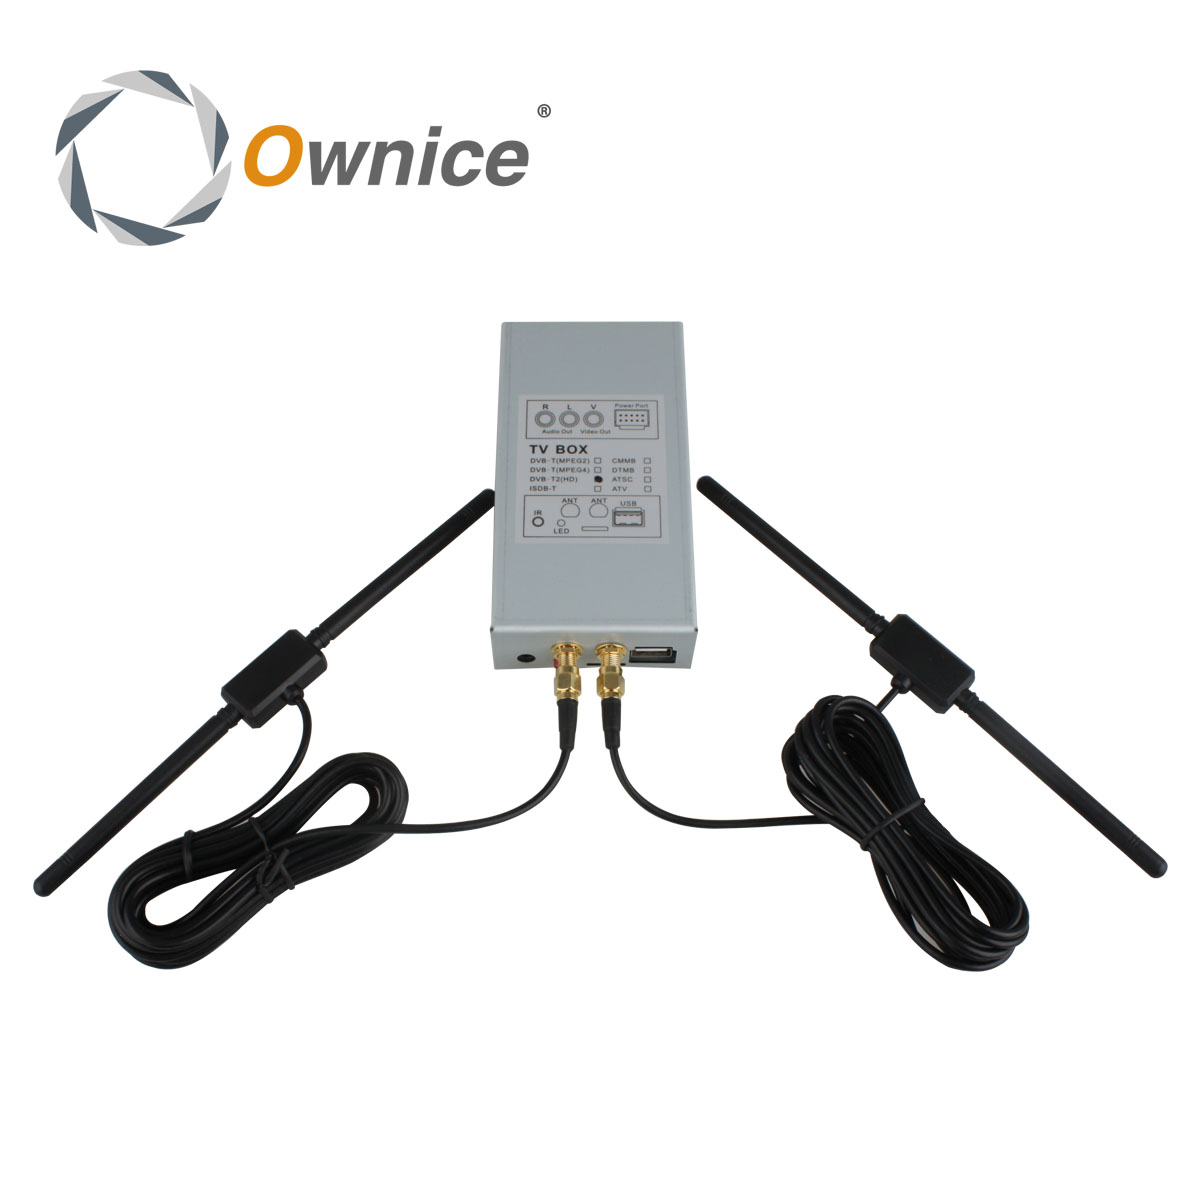 For Russia Thailand Malaysia Special DVB-T2 Box Tuners For Ownice Car DVD Player. The item just for our DVD special dvb t mpeg4 tv box tuners for ownice car dvd player the item just for our dvd